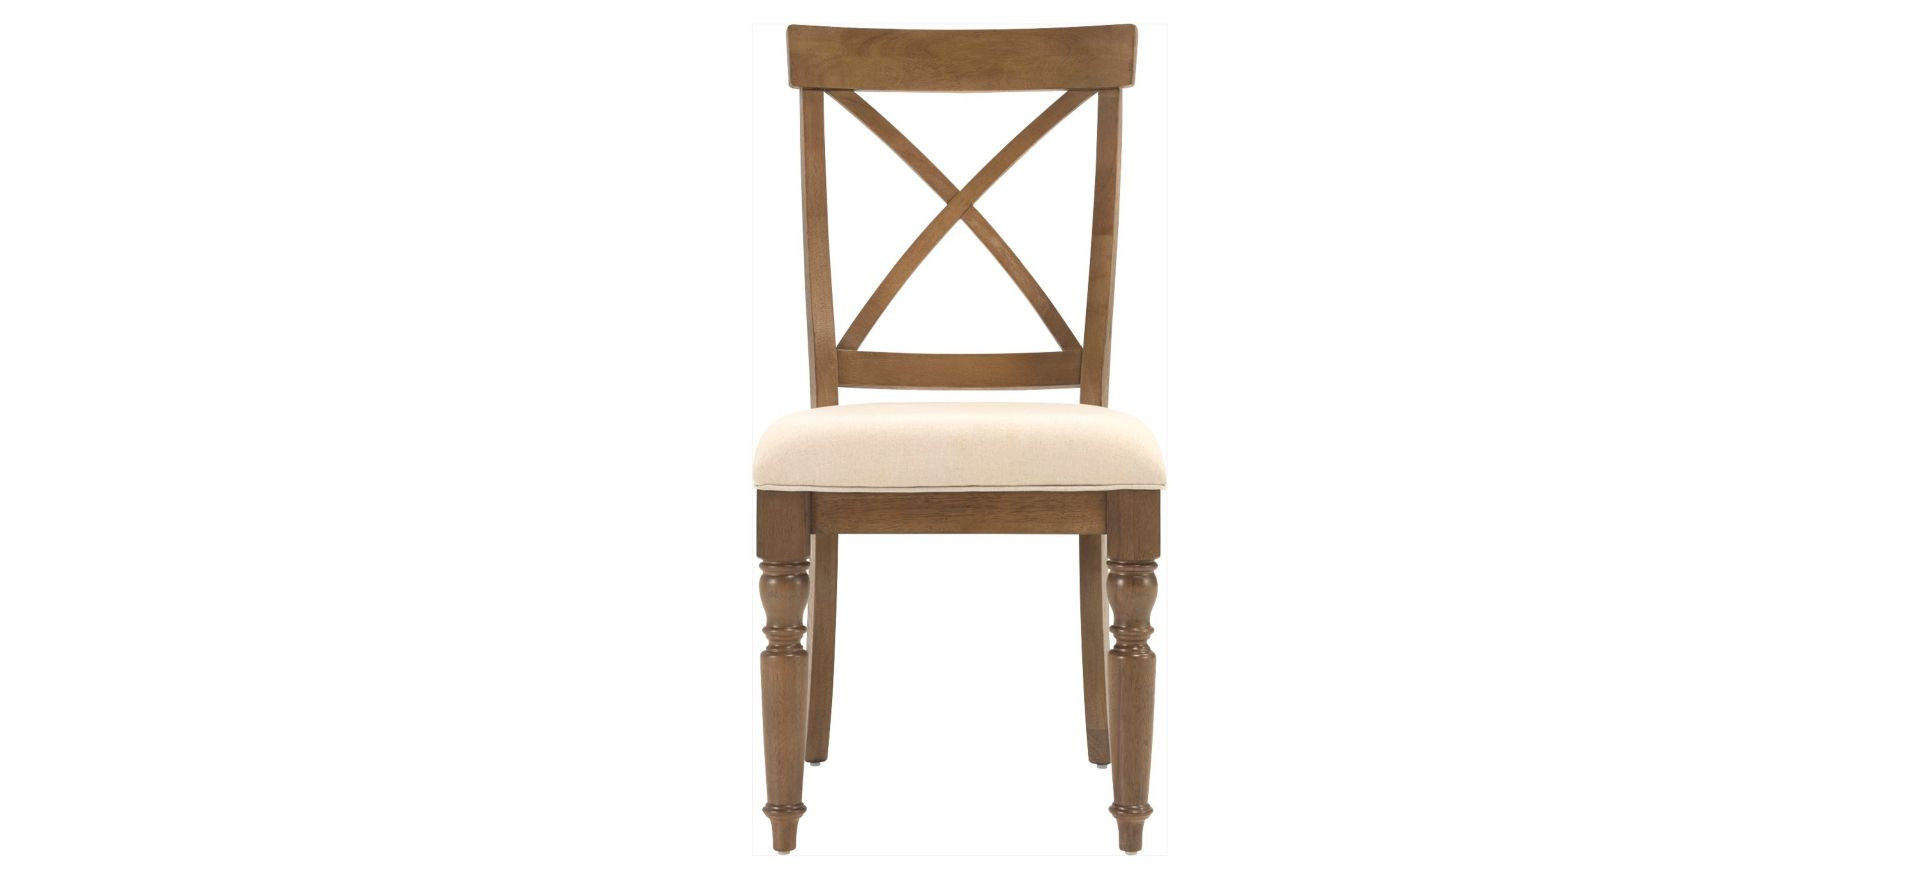 Raymour & Flanigan Aberdeen Beige Driftwood Dining Chairs